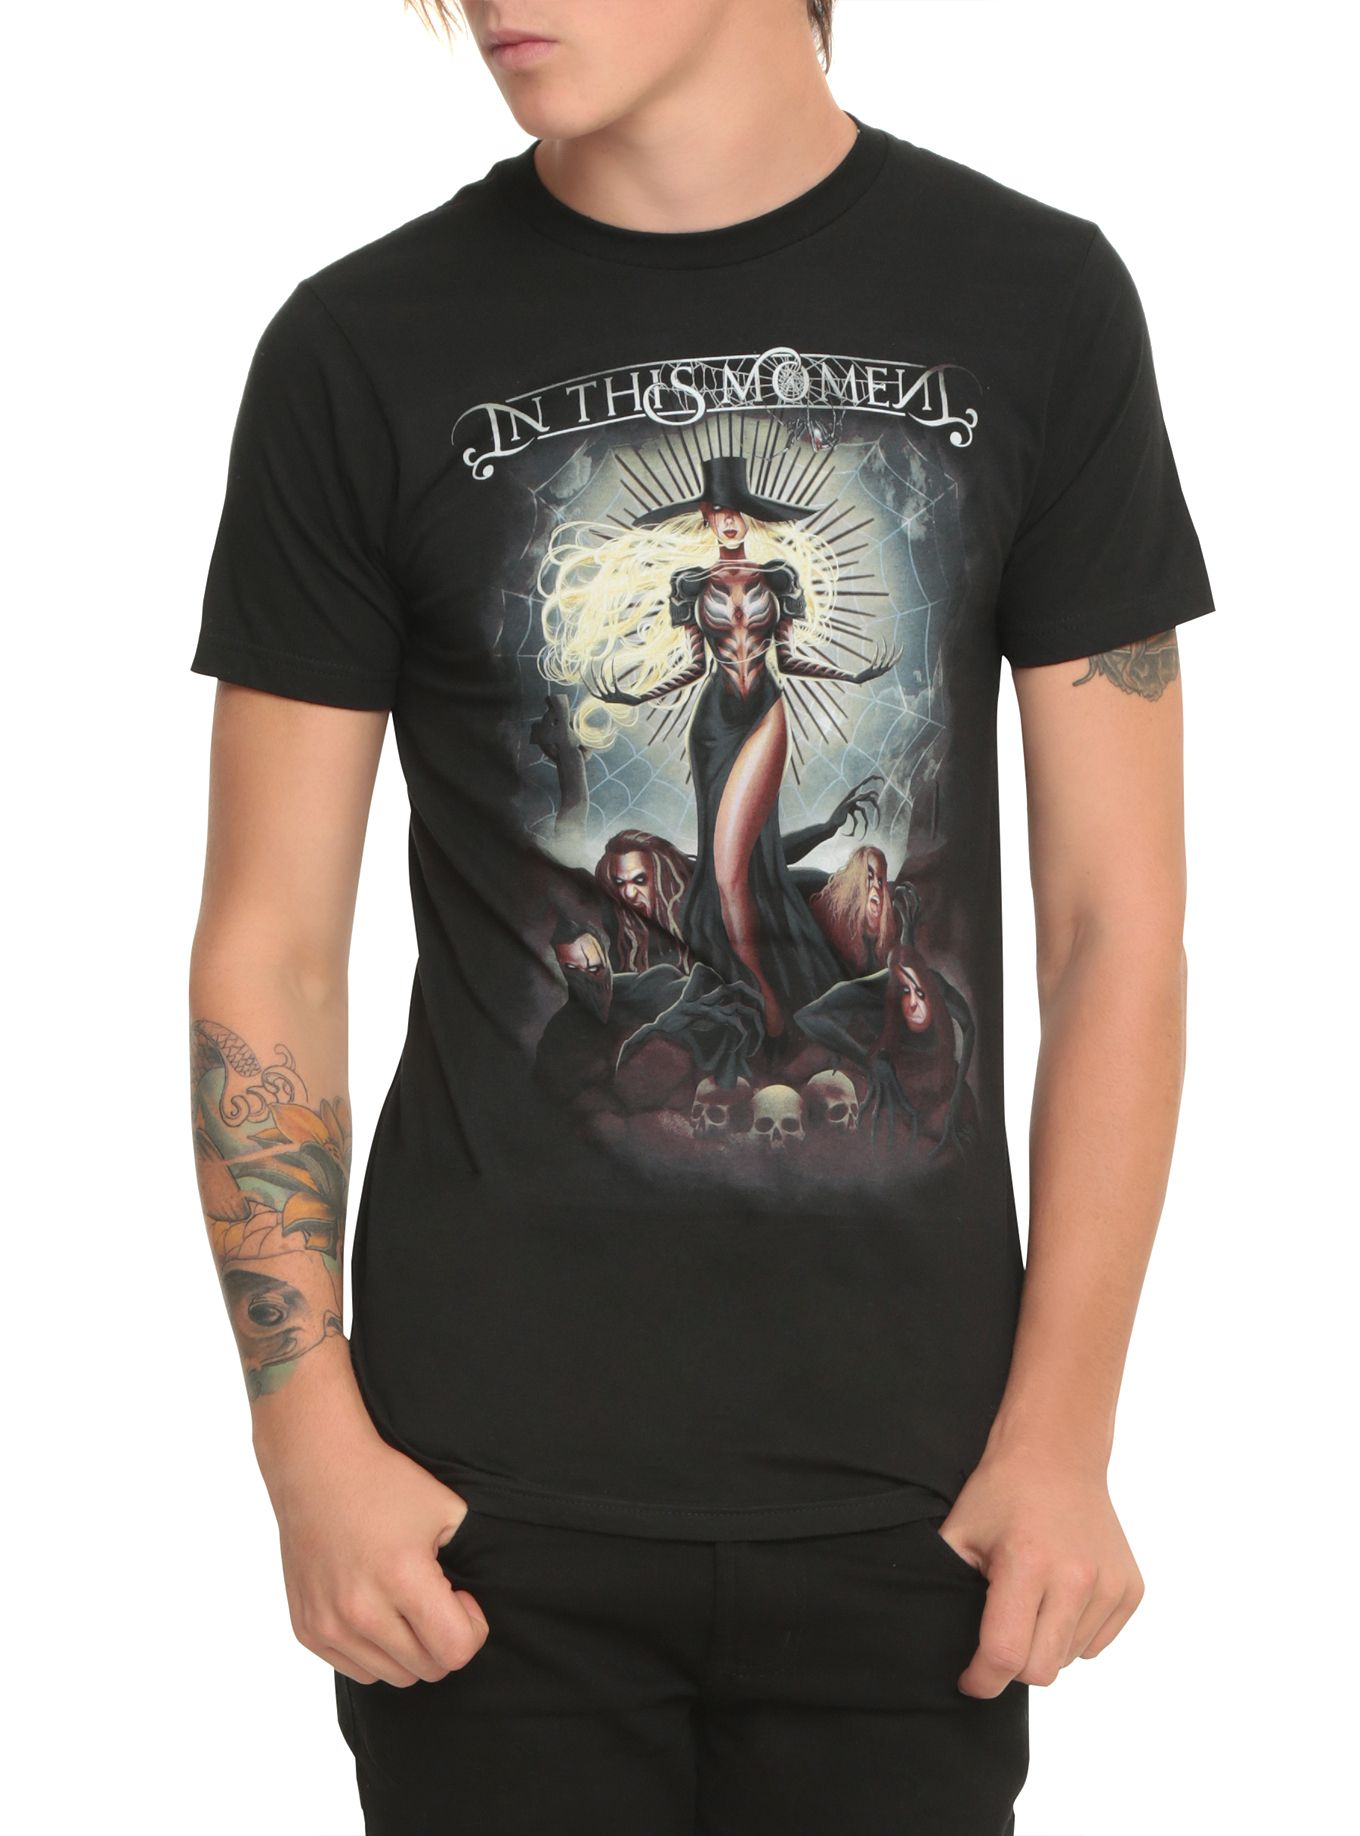 Black widow t shirt hot topic - In This Moment Black Widow T Shirt Hot Topic